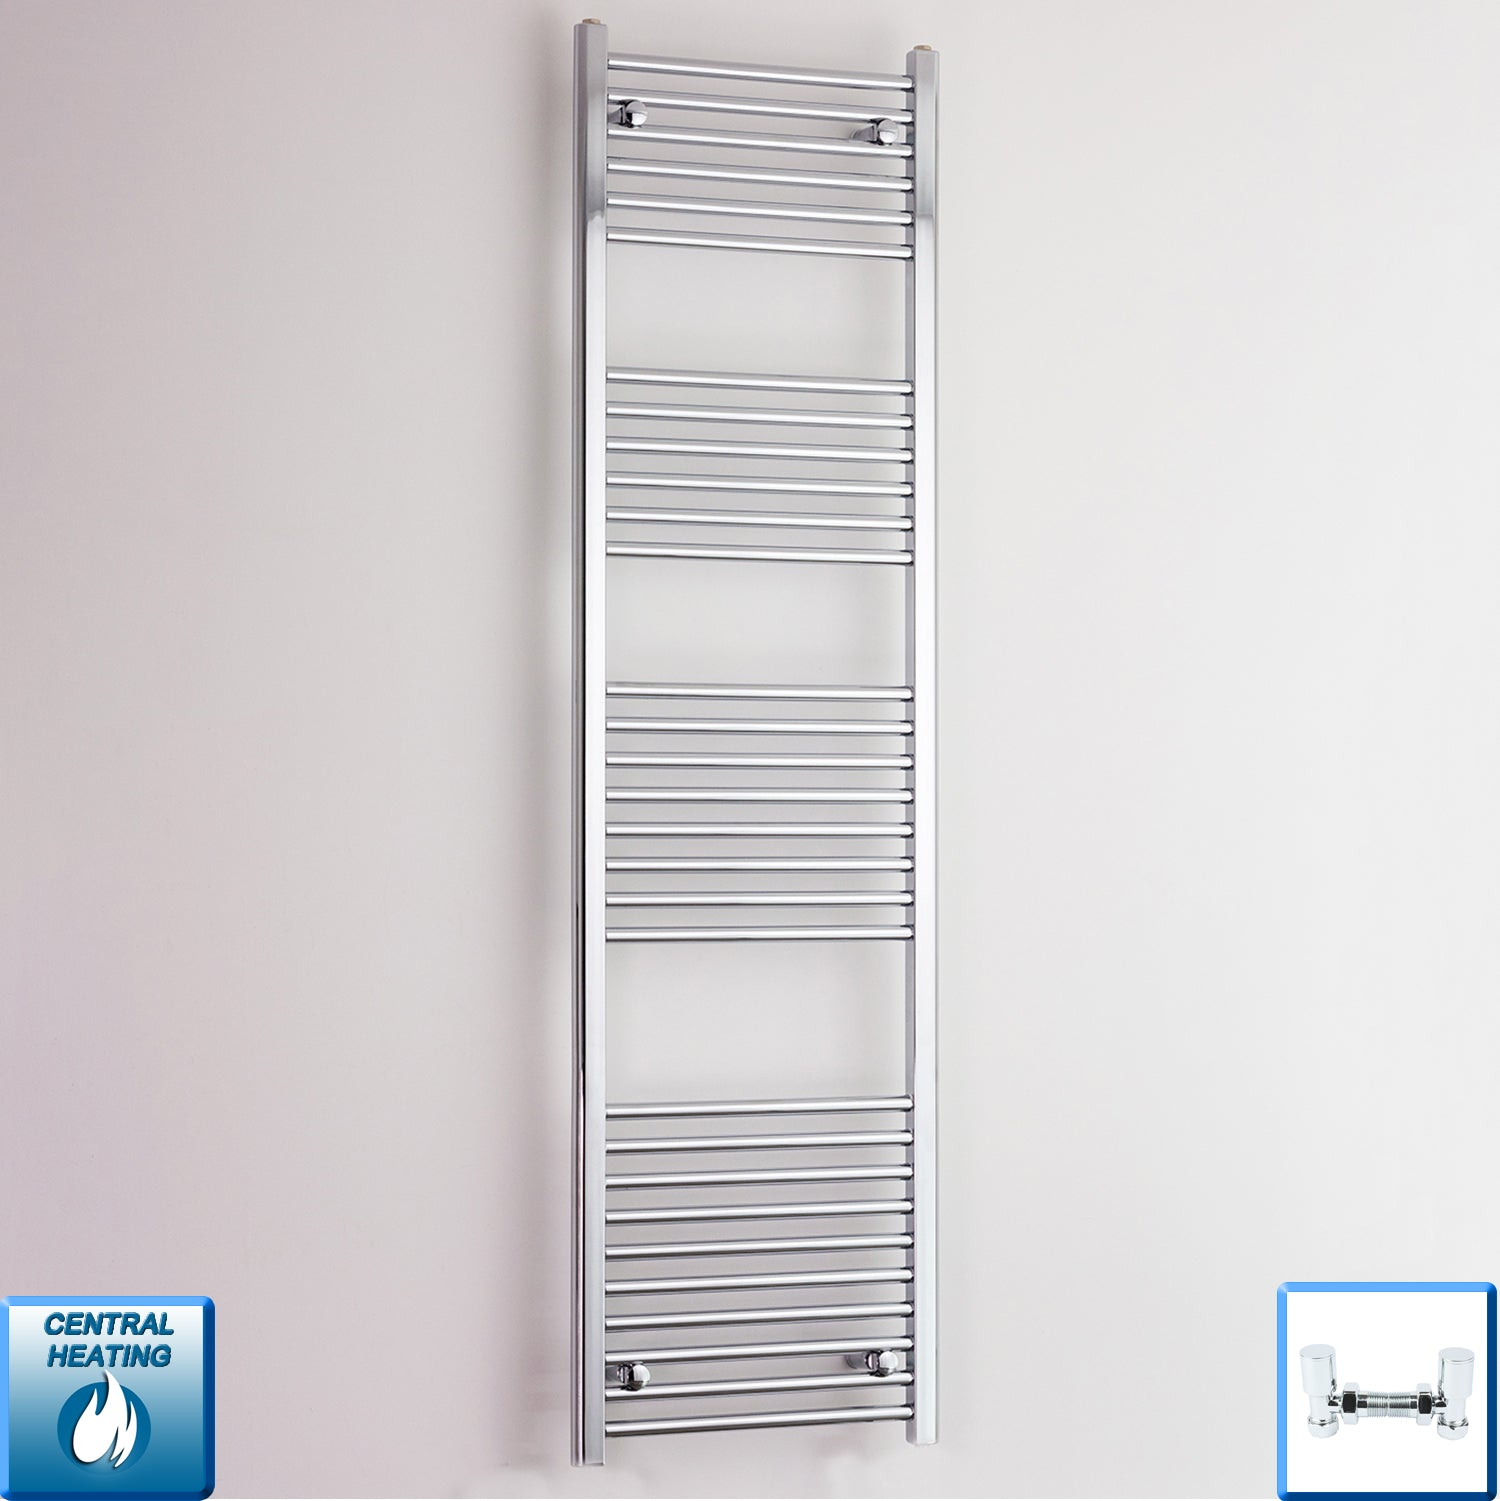 500mm Wide 1800mm High Curved Chrome Heated Towel Rail Radiator HTR,With Angled Valve